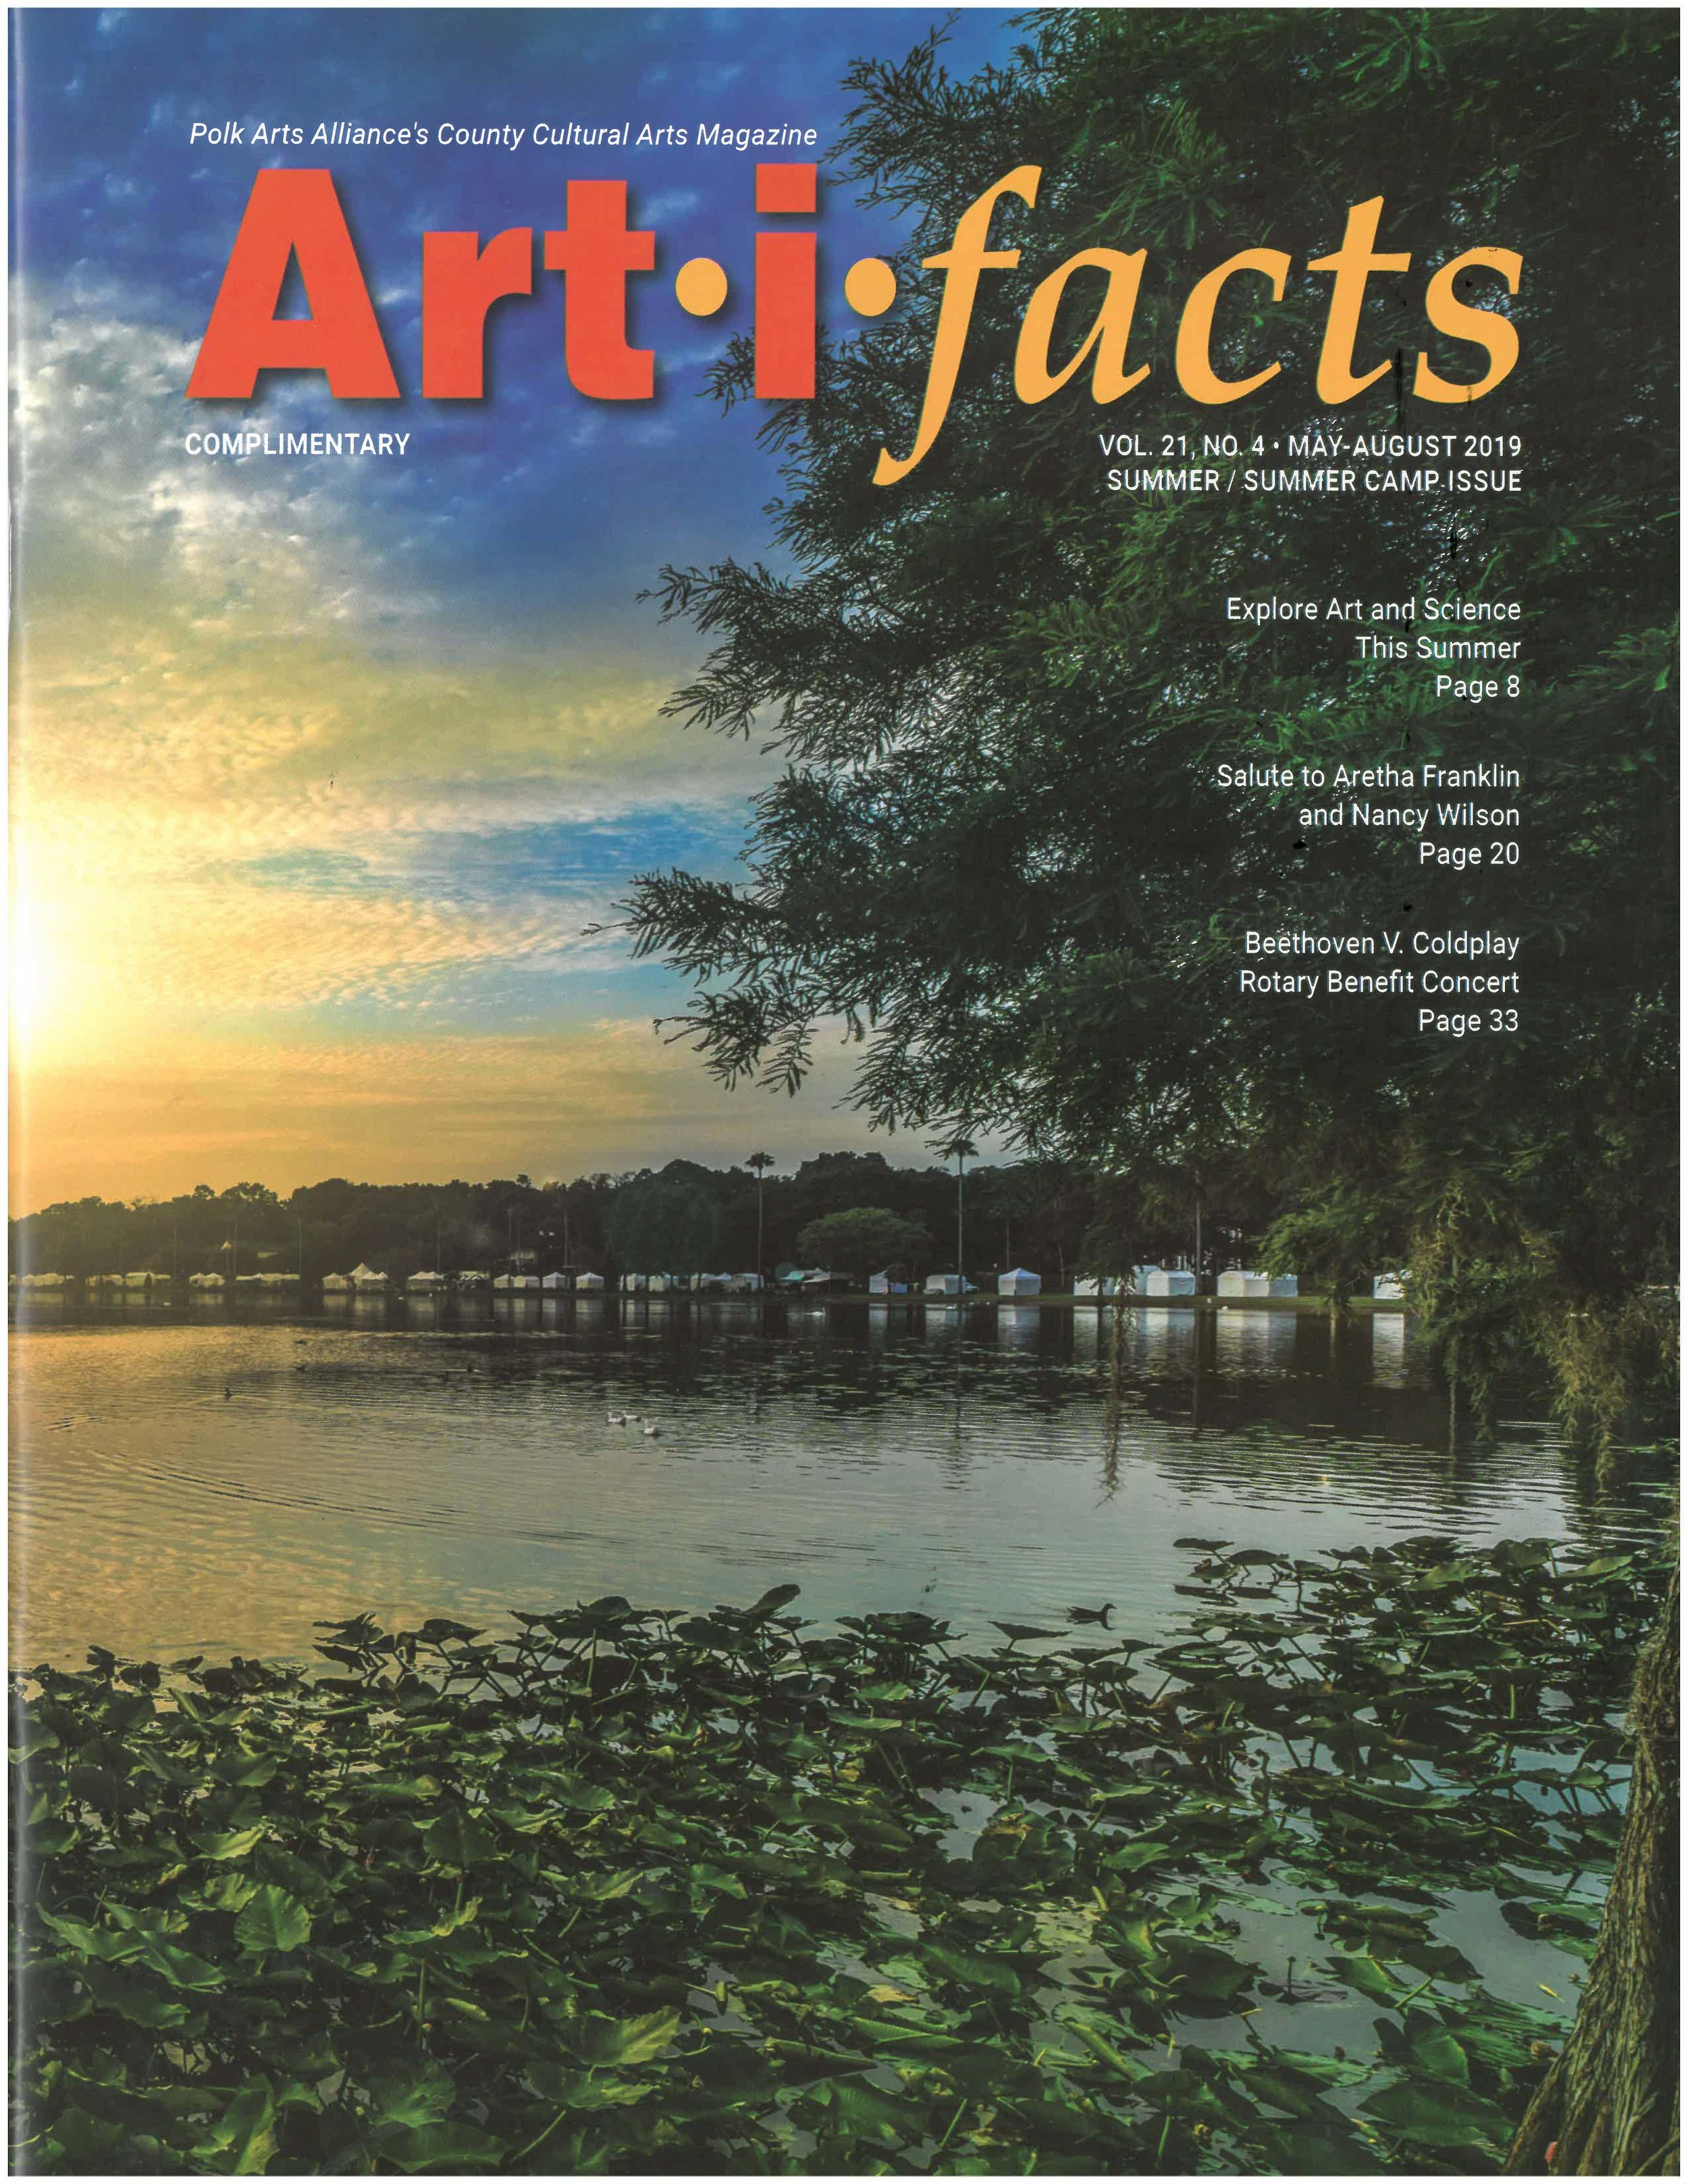 Art-I-Facts Magazine Cover Photo May 2019 by Gregory Mills